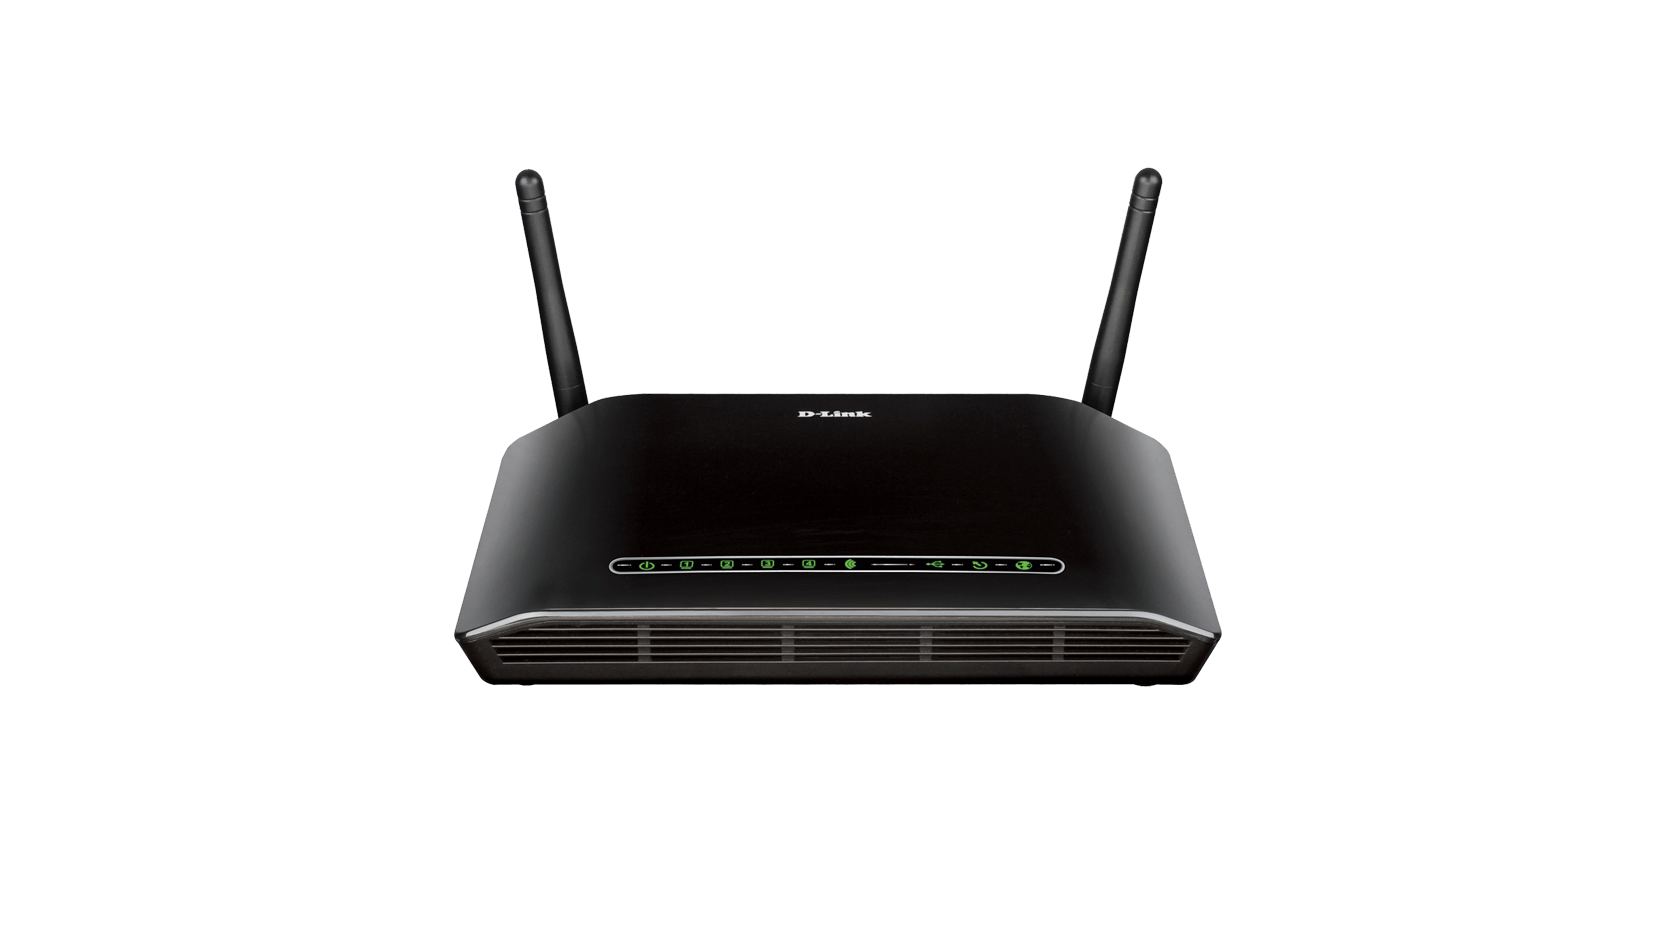 DSL-2750B Wireless N300 ADSL2+ Modem Router | D-Link